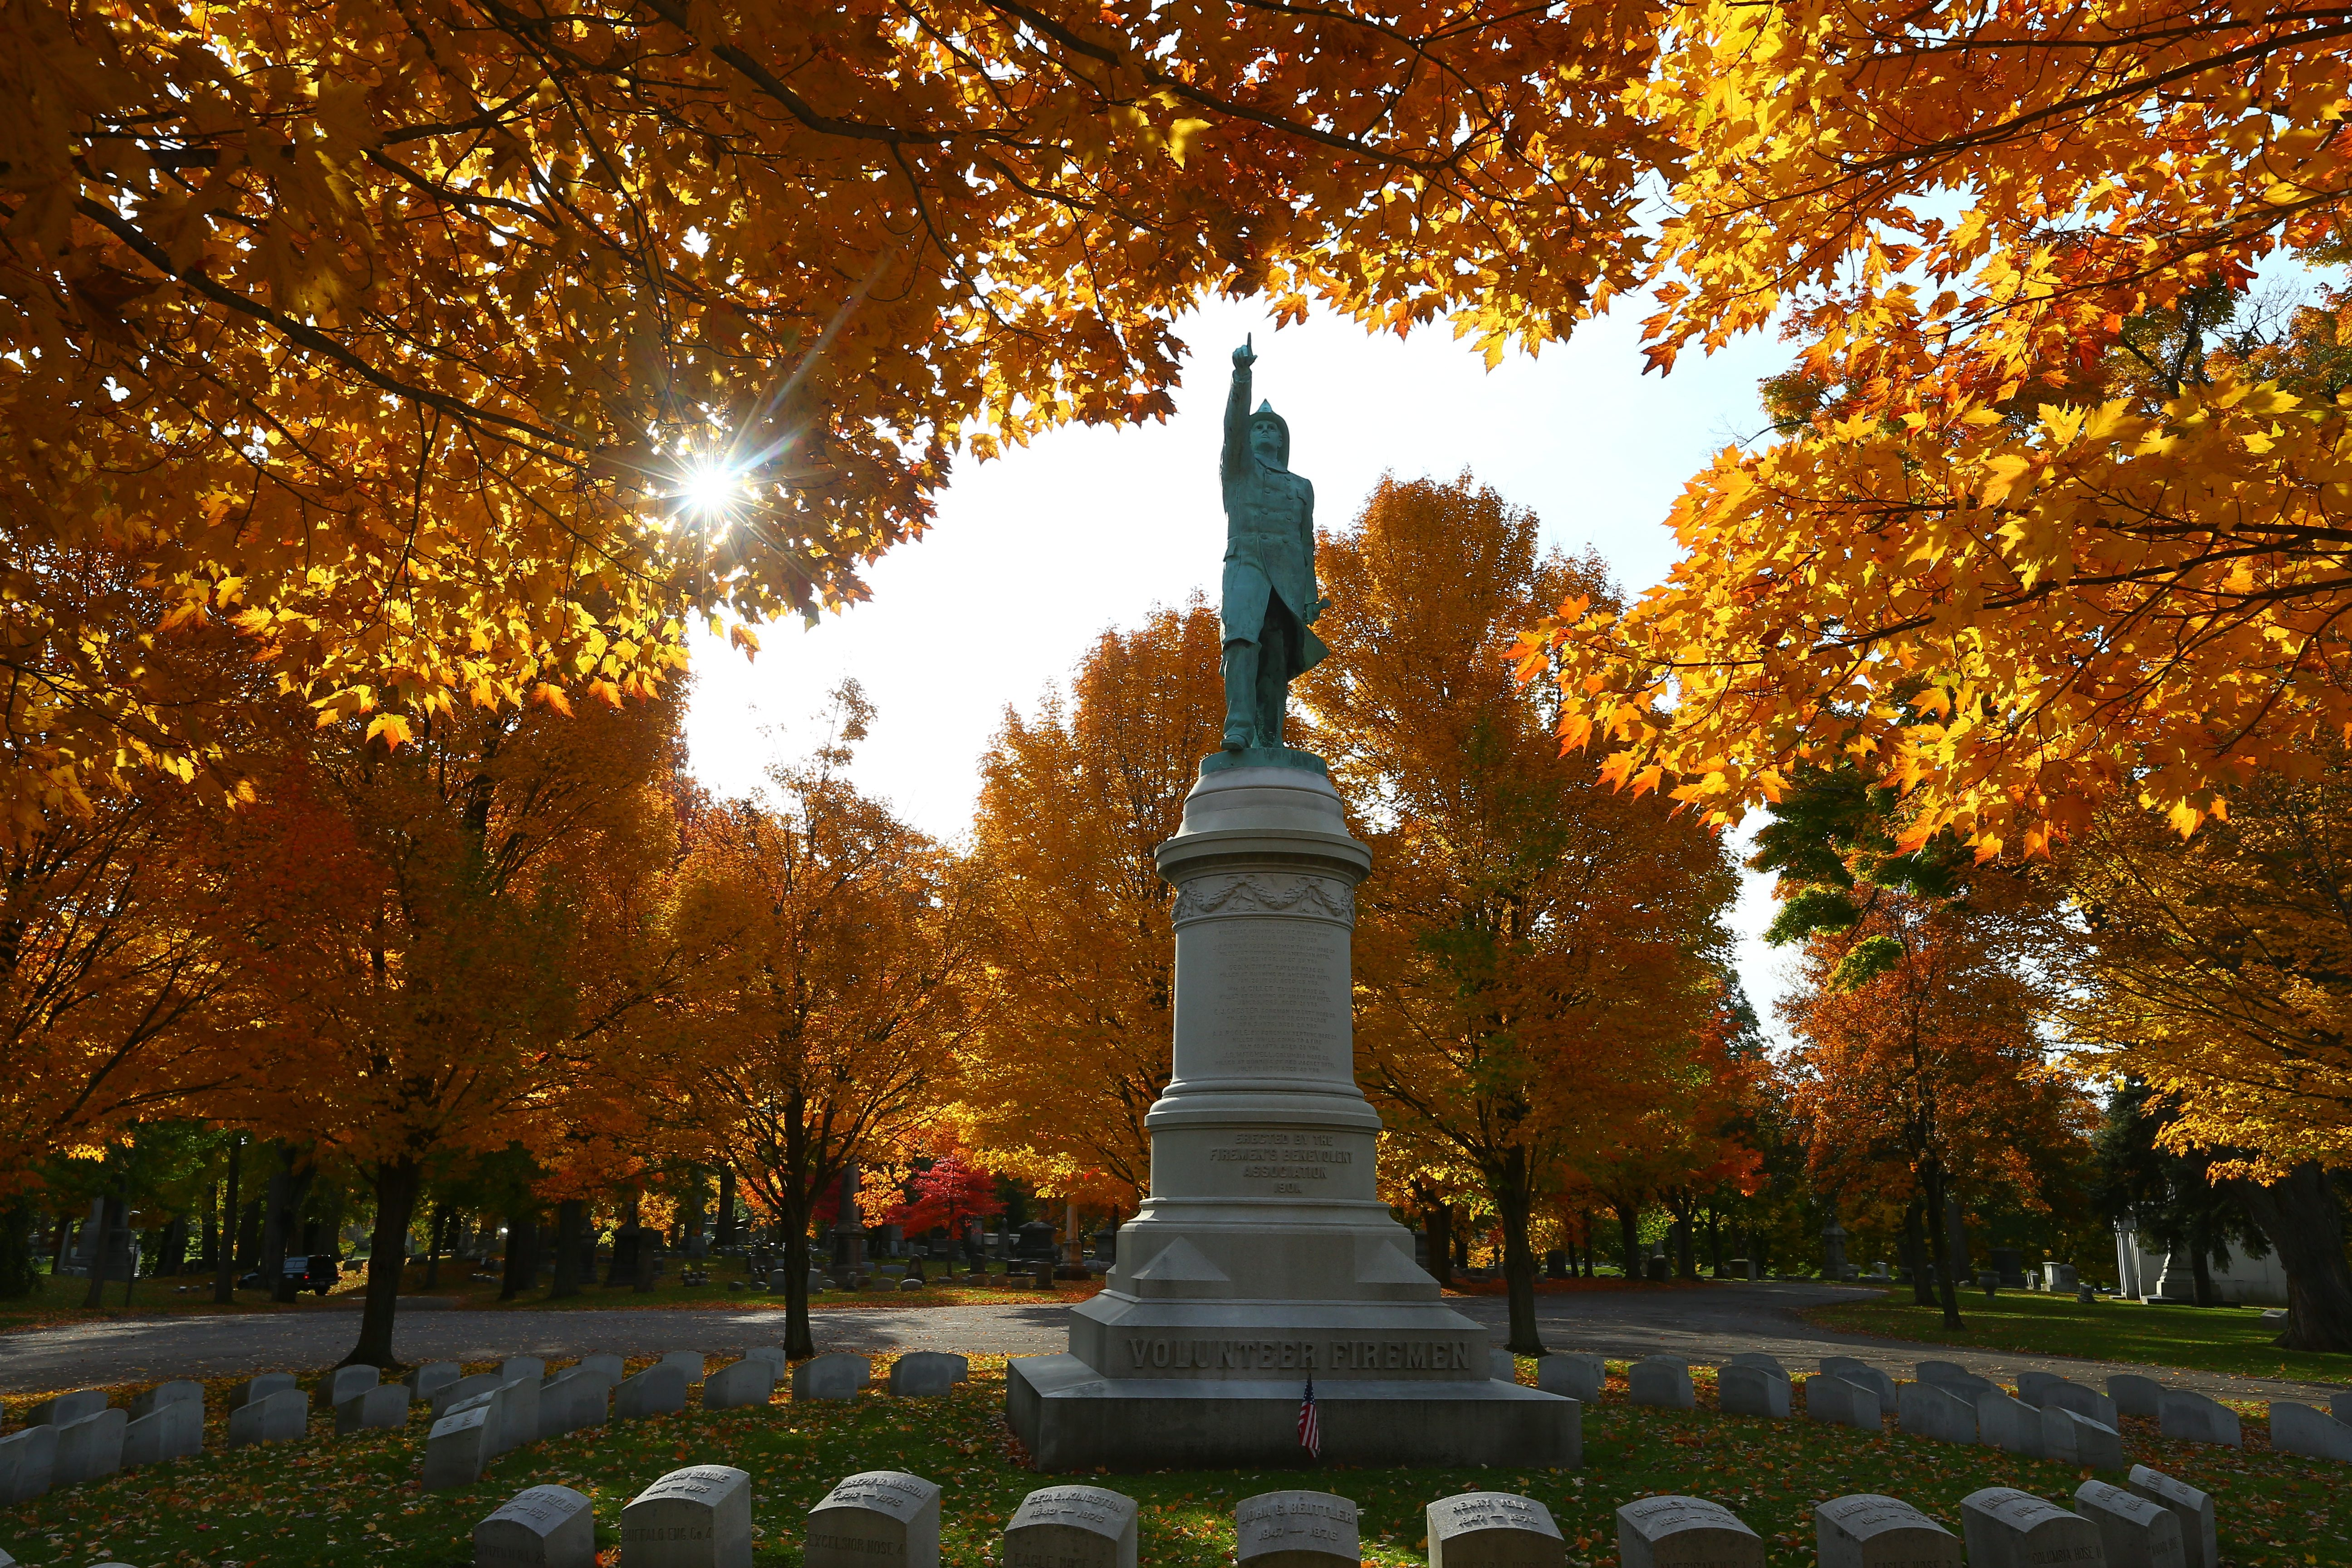 Volunteer firemen monument surrounded by fall foliage on a sunny, 49-degree morning at Forest Lawn Cemetery. (John Hickey/Buffalo News)